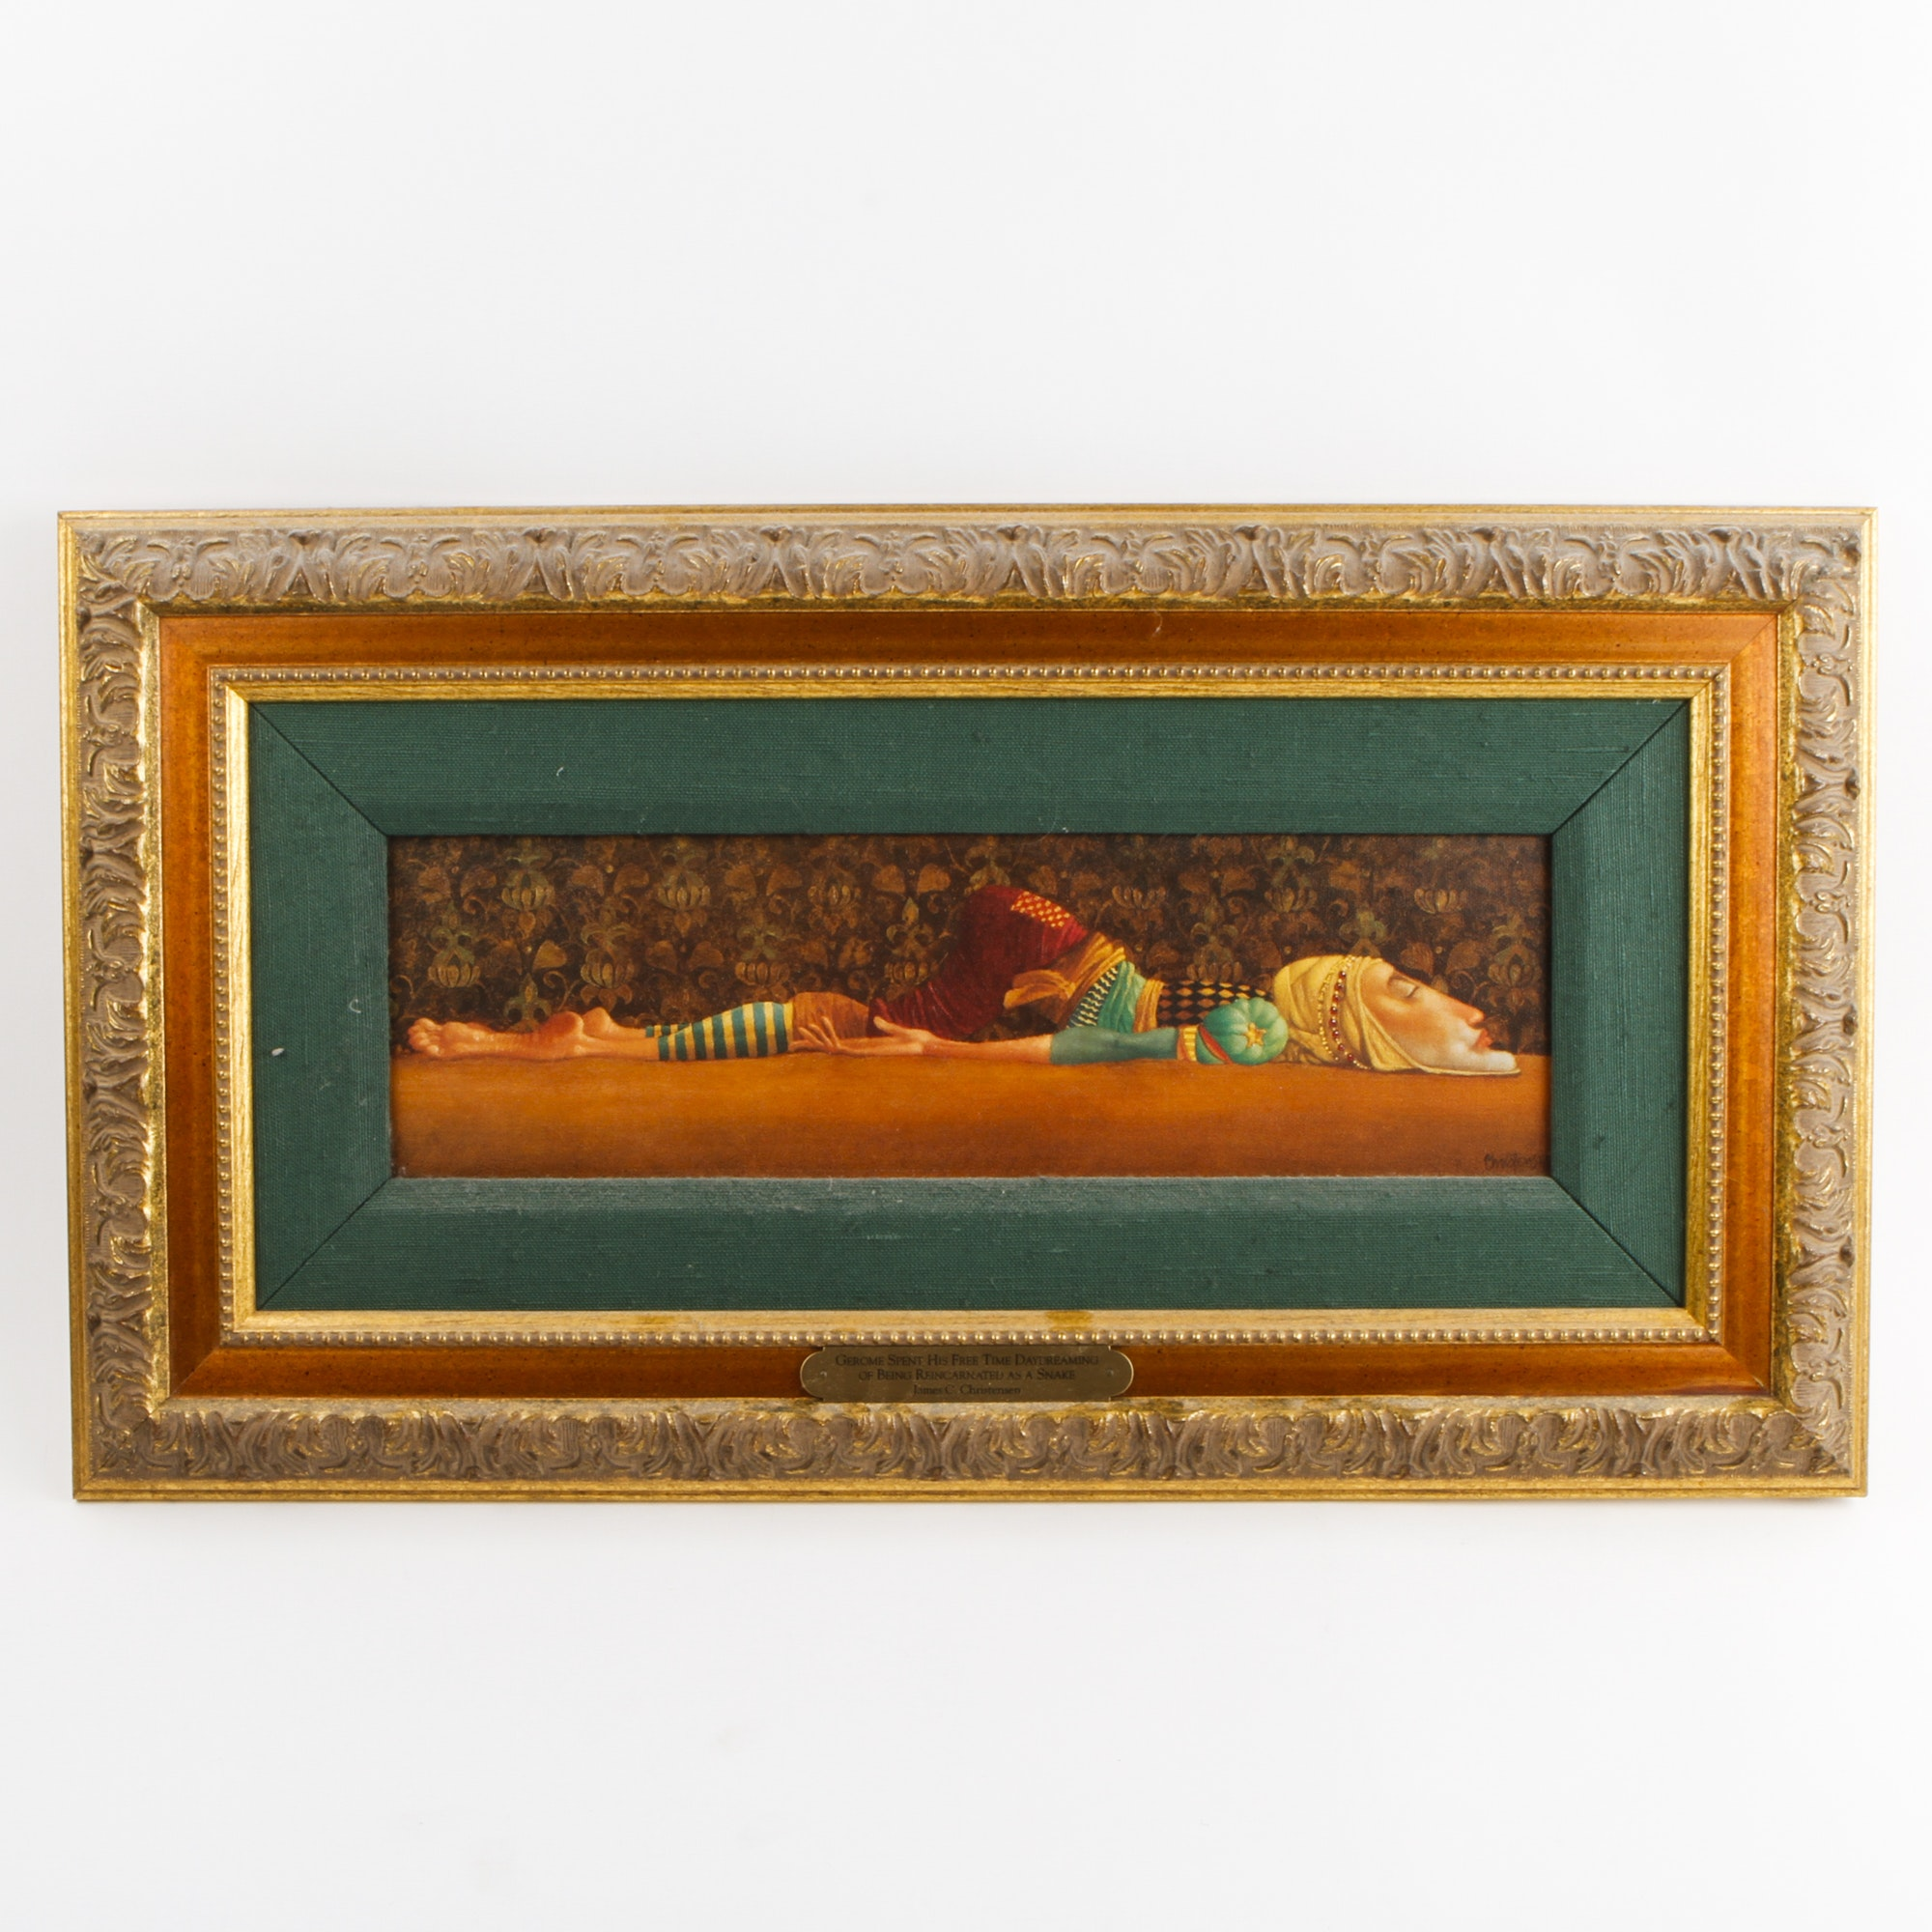 """James C. Christensen Signed Giclee on Canvas """"Gerome Spent His Free Time Daydreaming of Being Reincarnated as a Snake"""""""